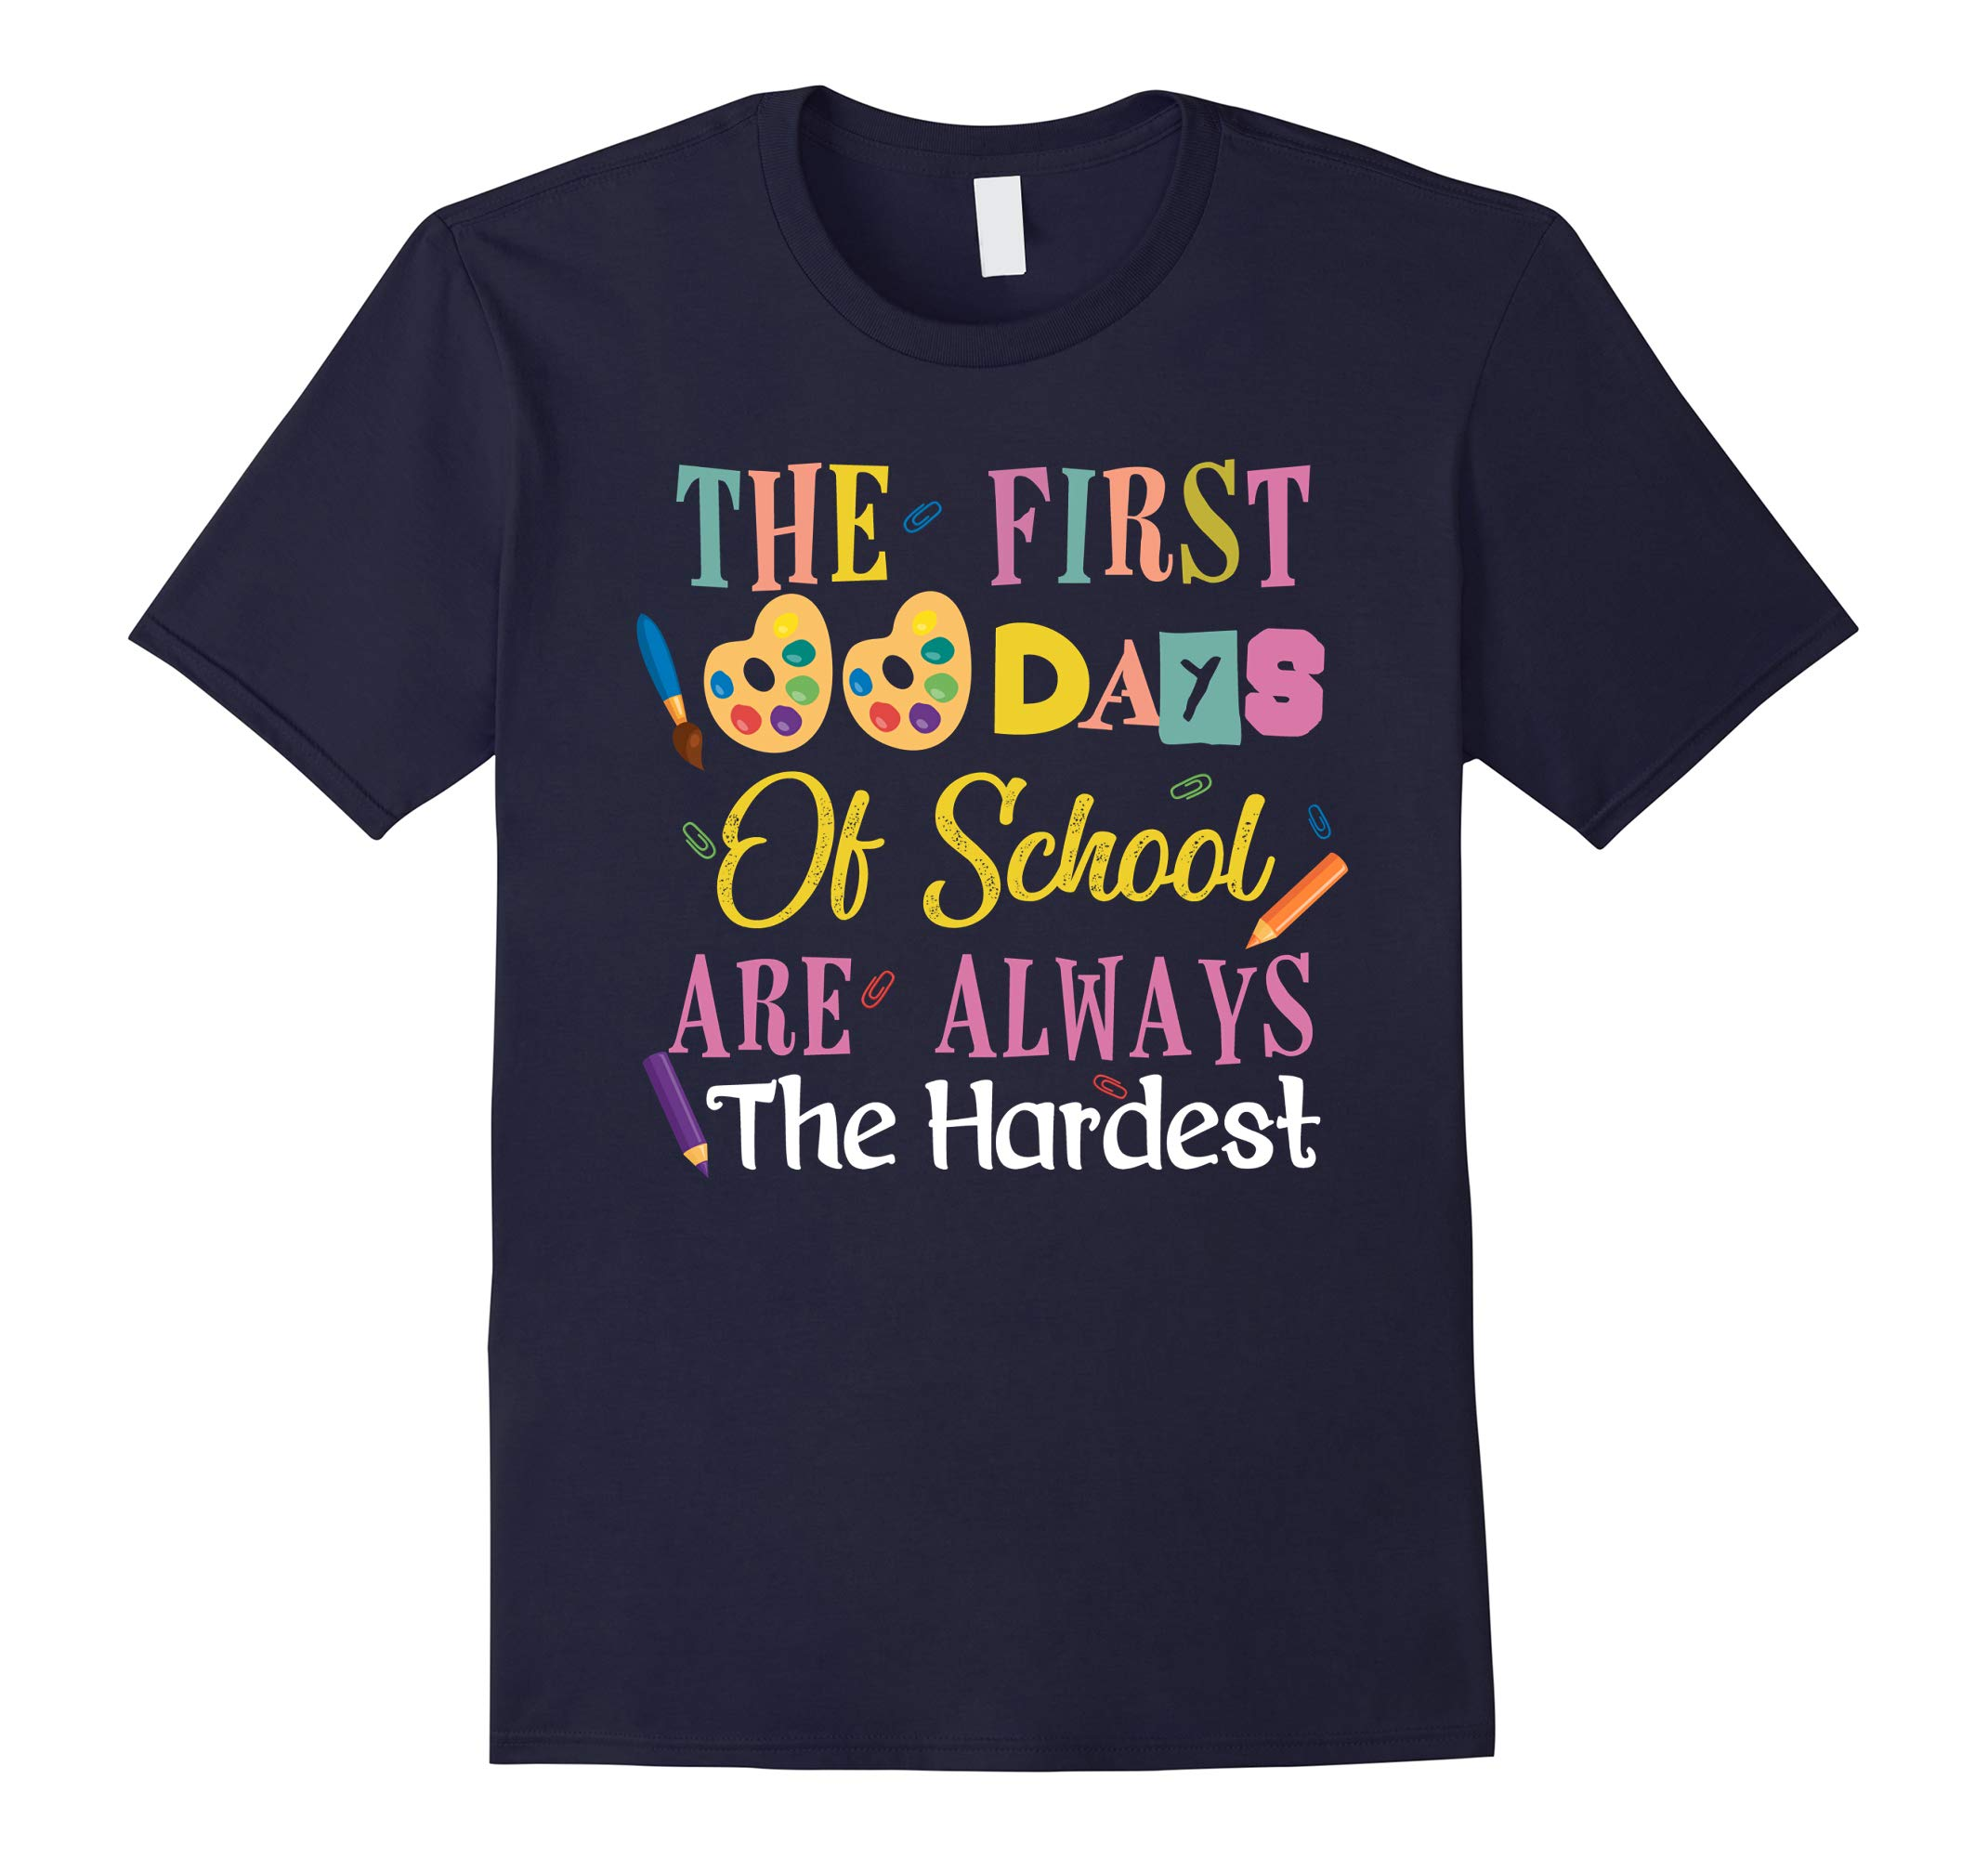 100th Day School Shirt The First 100 Days Of School T Shirt-RT